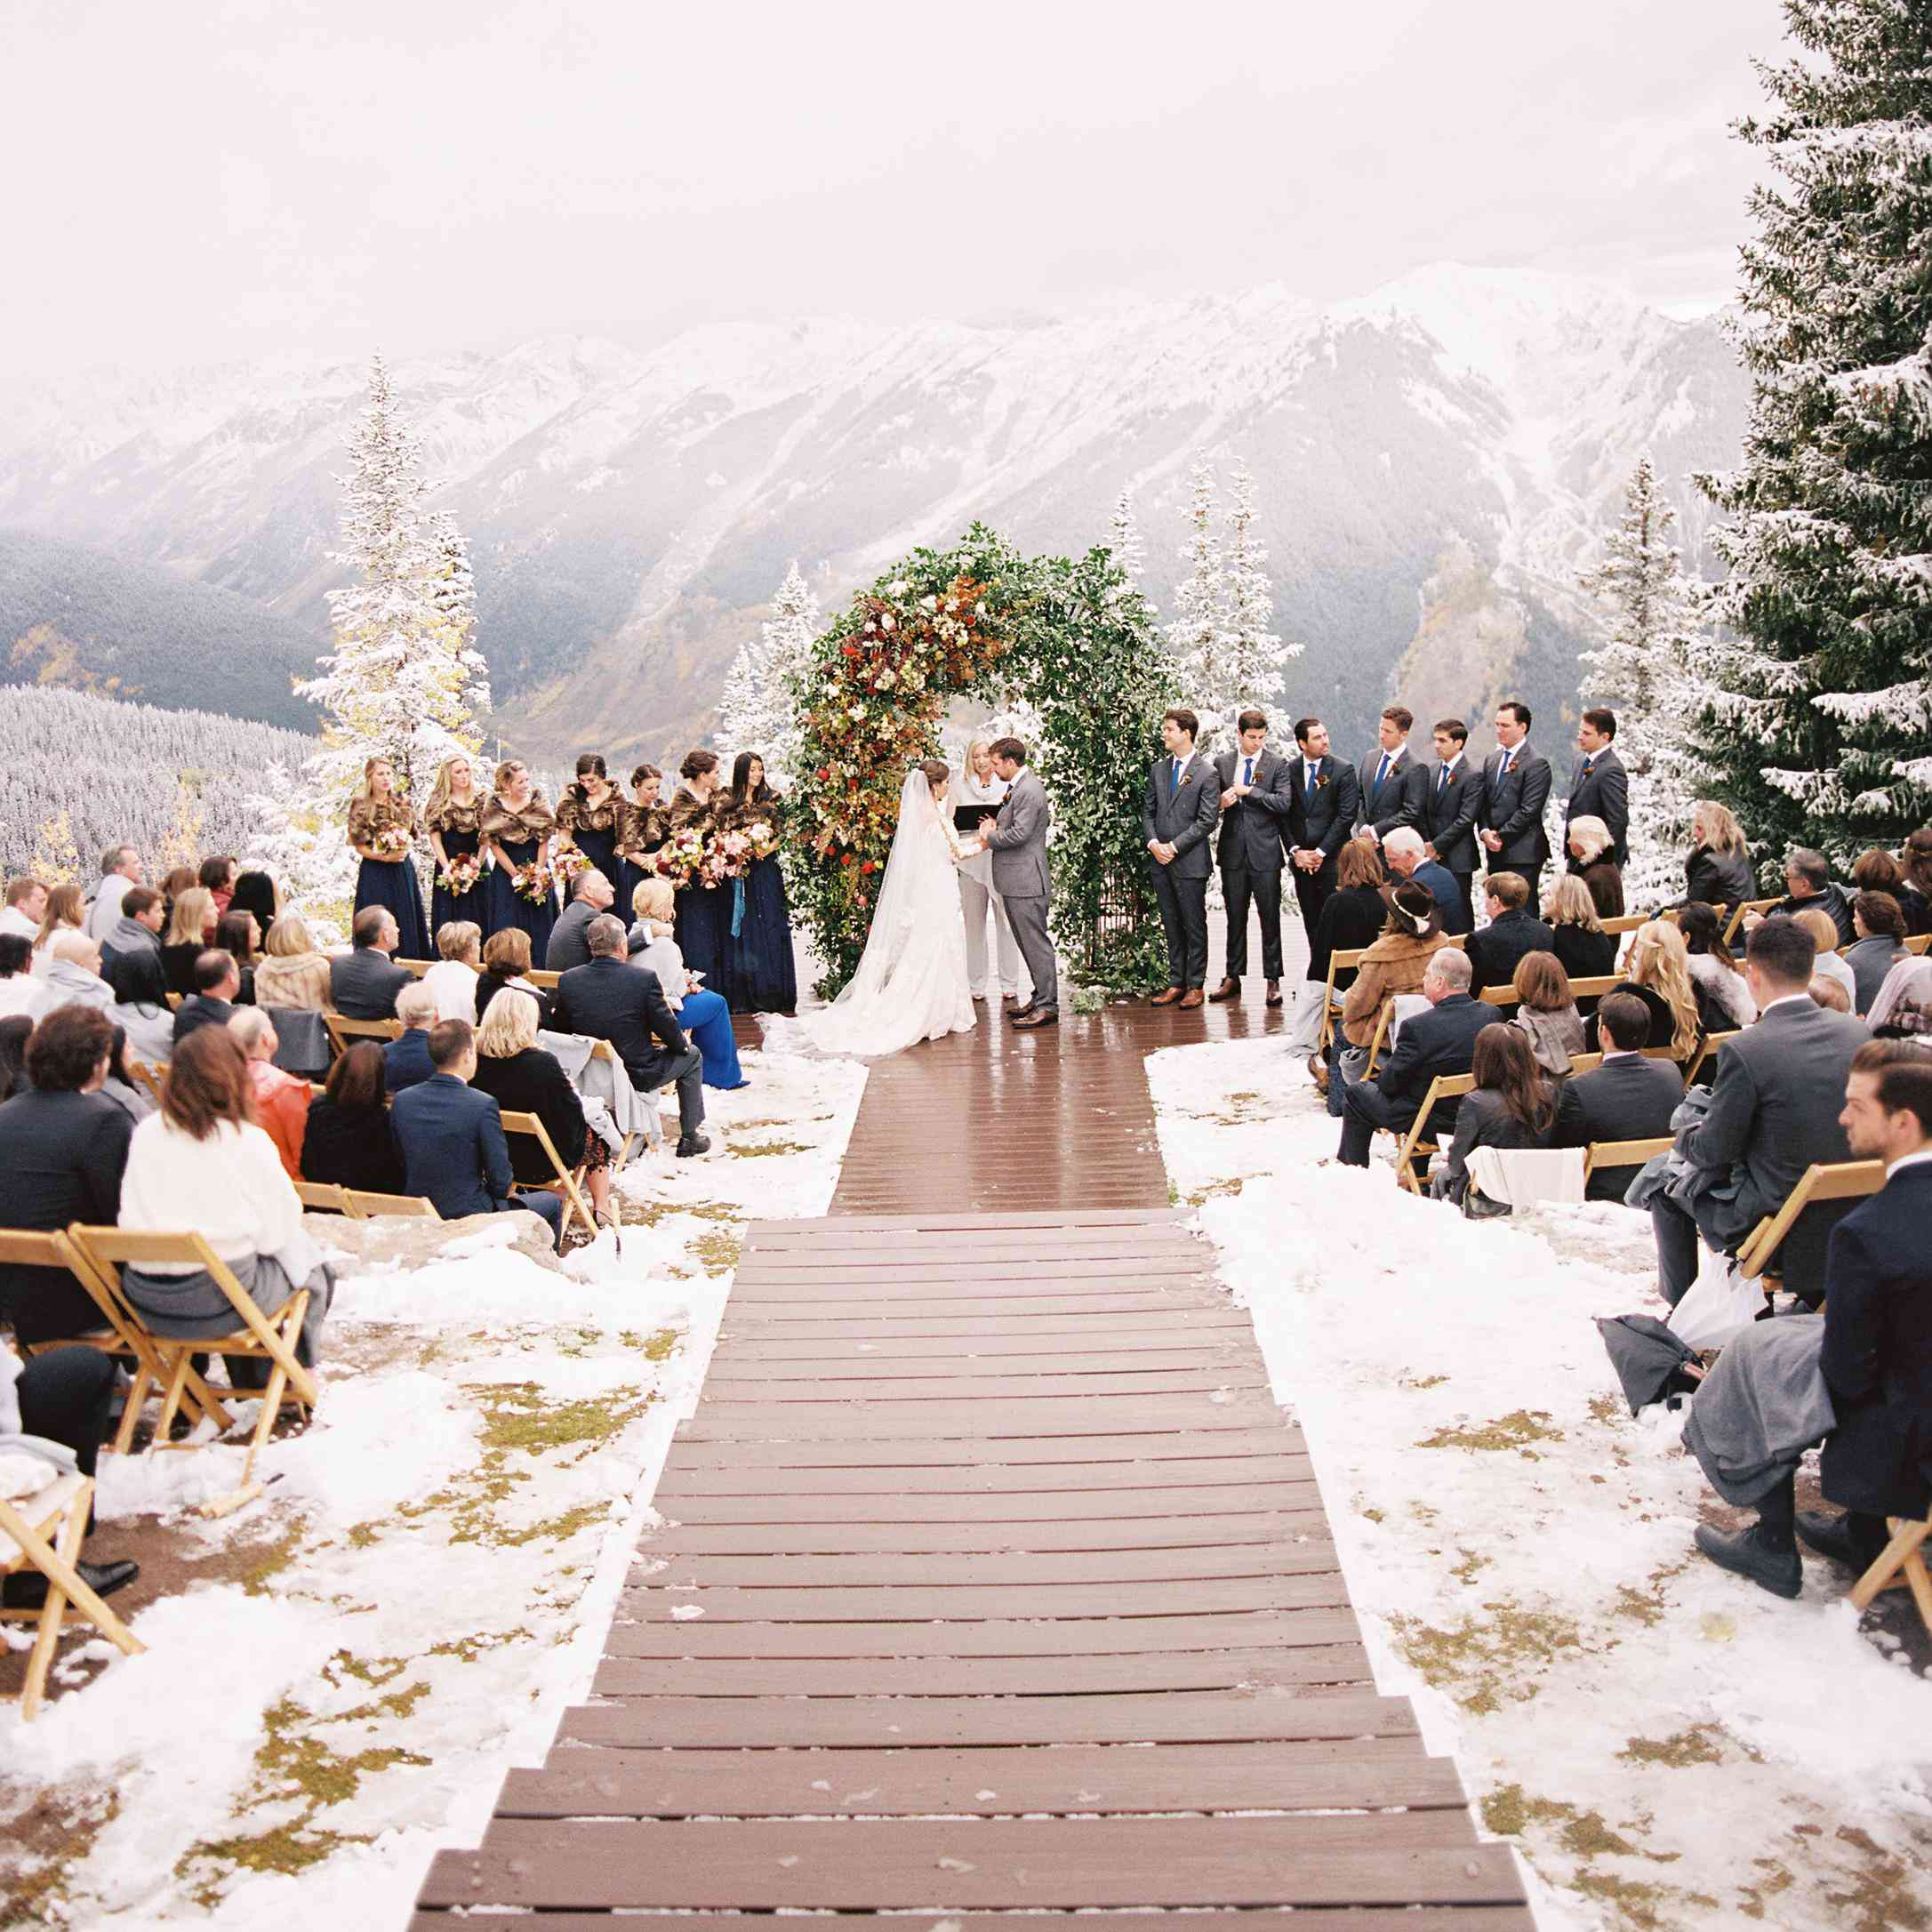 10 Things All Guests Love At Winter Weddings